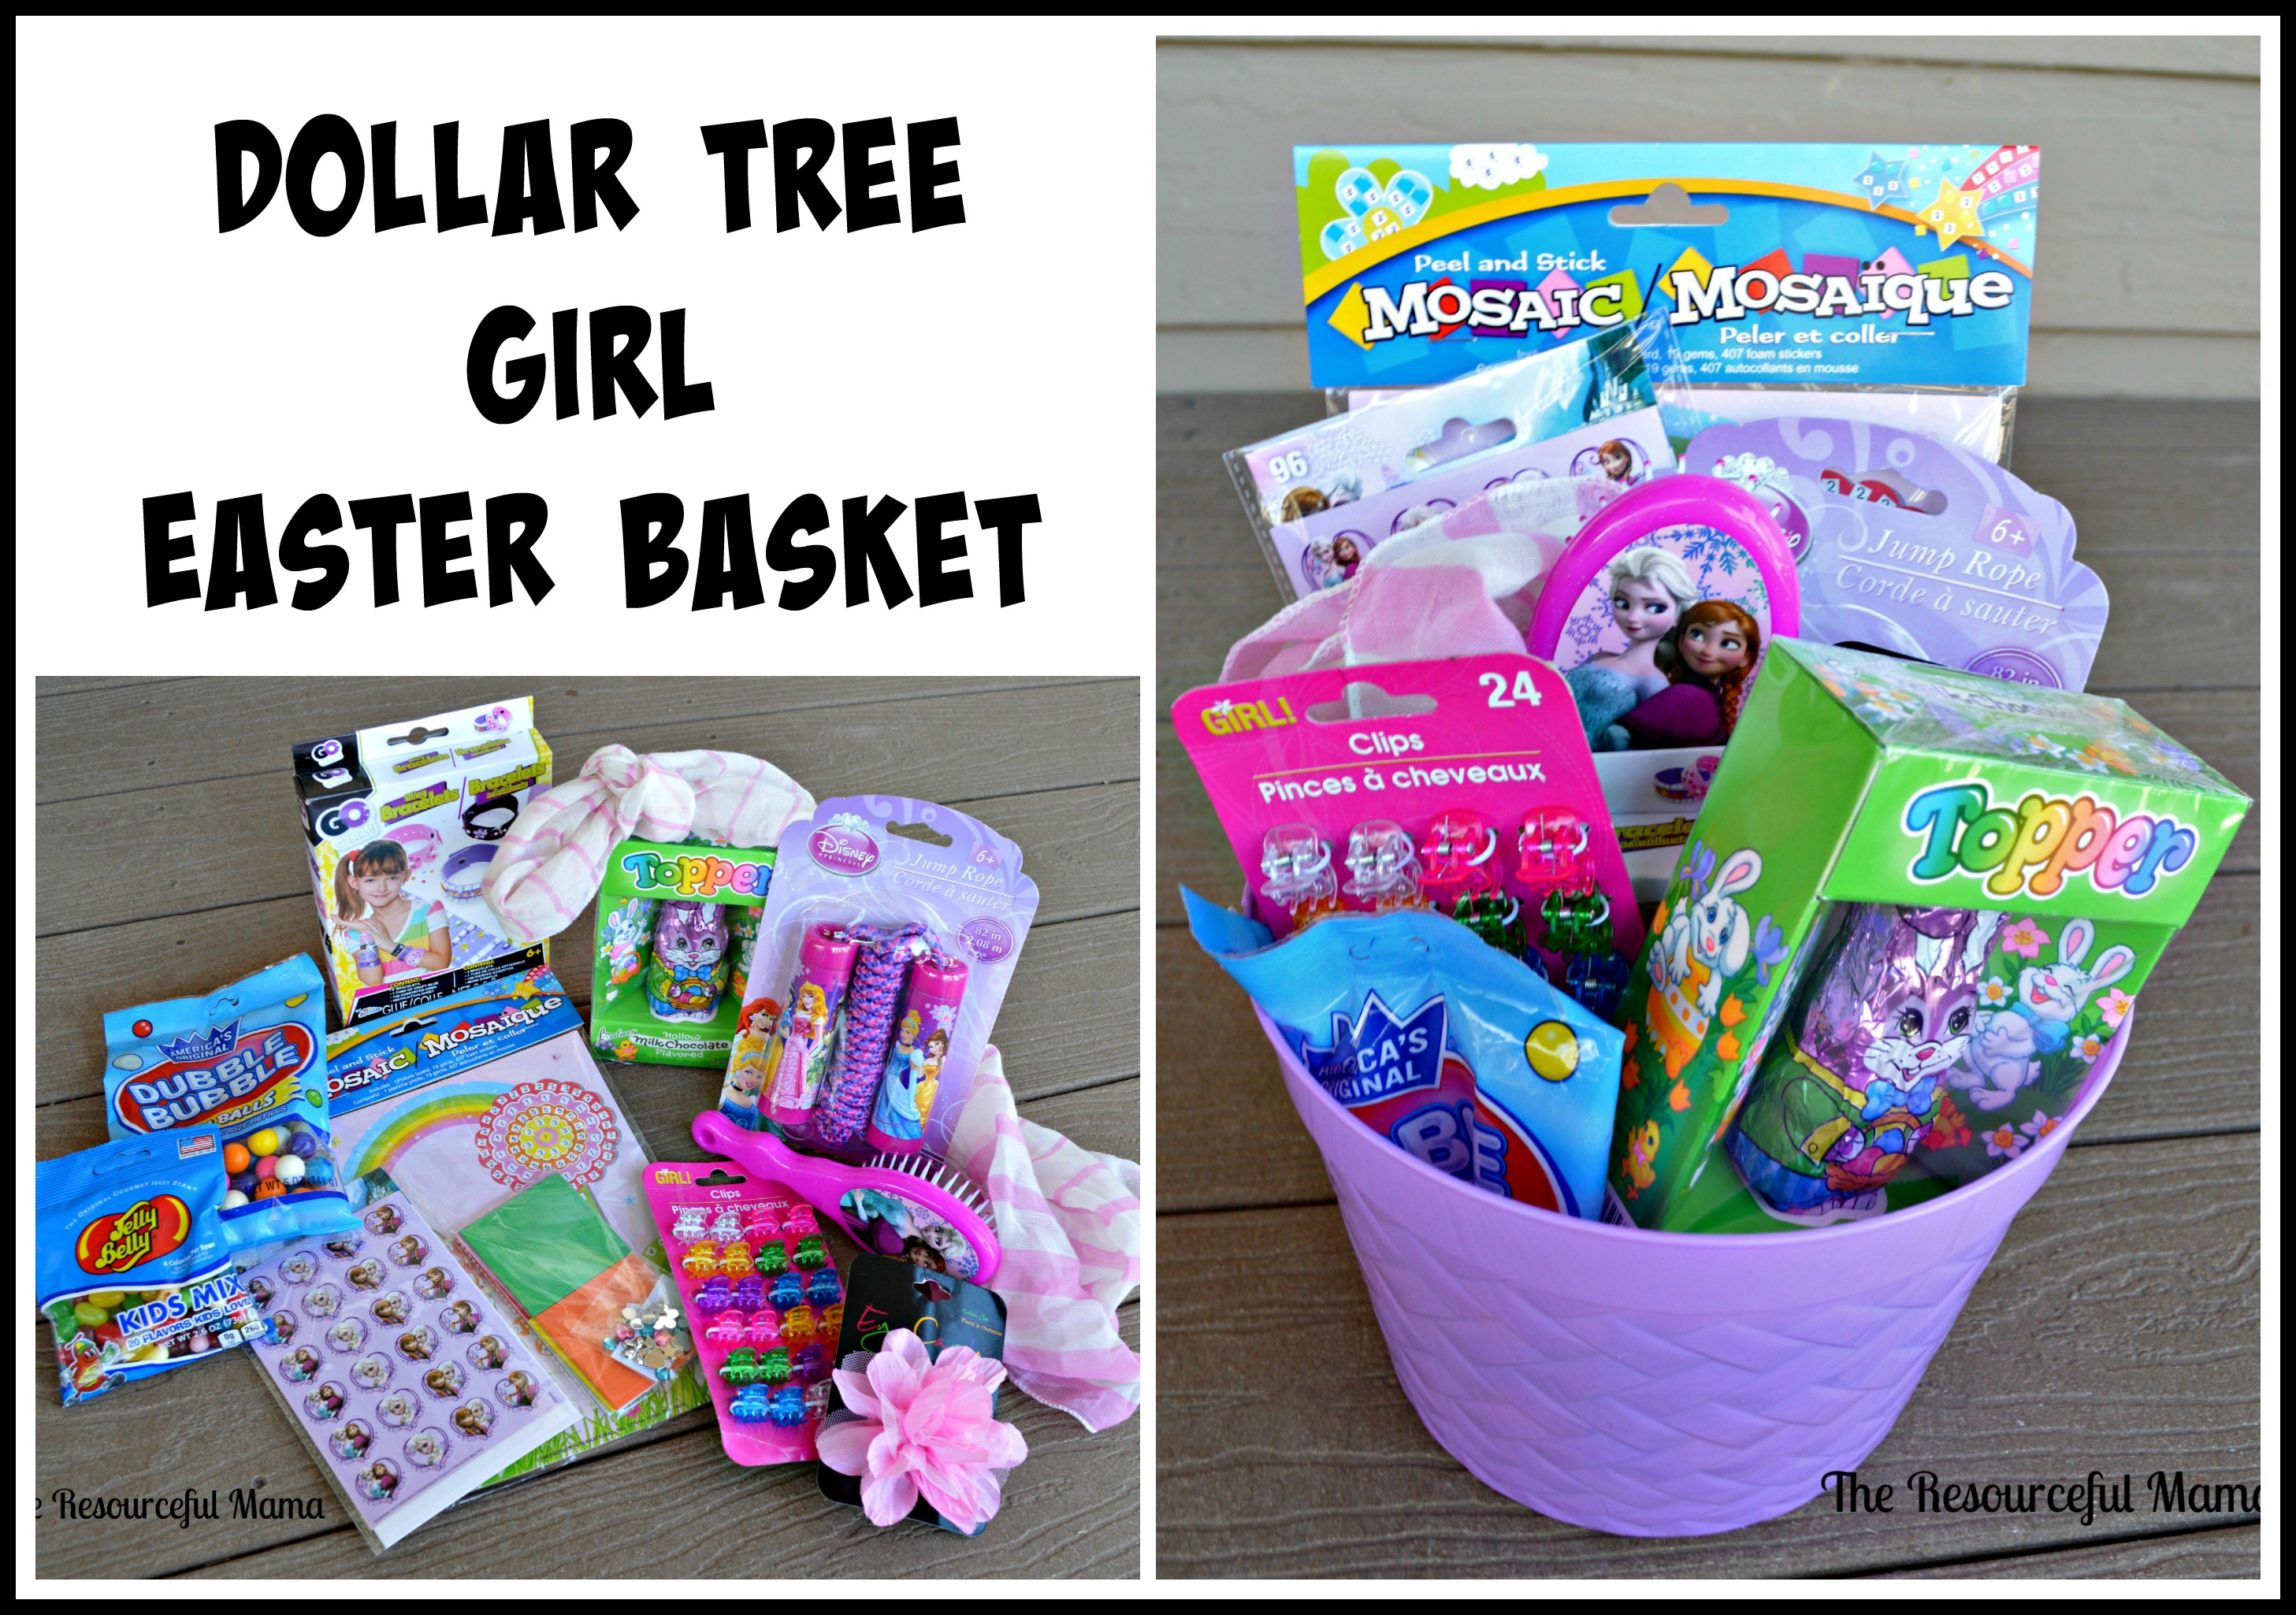 Dollar tree easter baskets the resourceful mama dollar tree easter basket girl negle Image collections